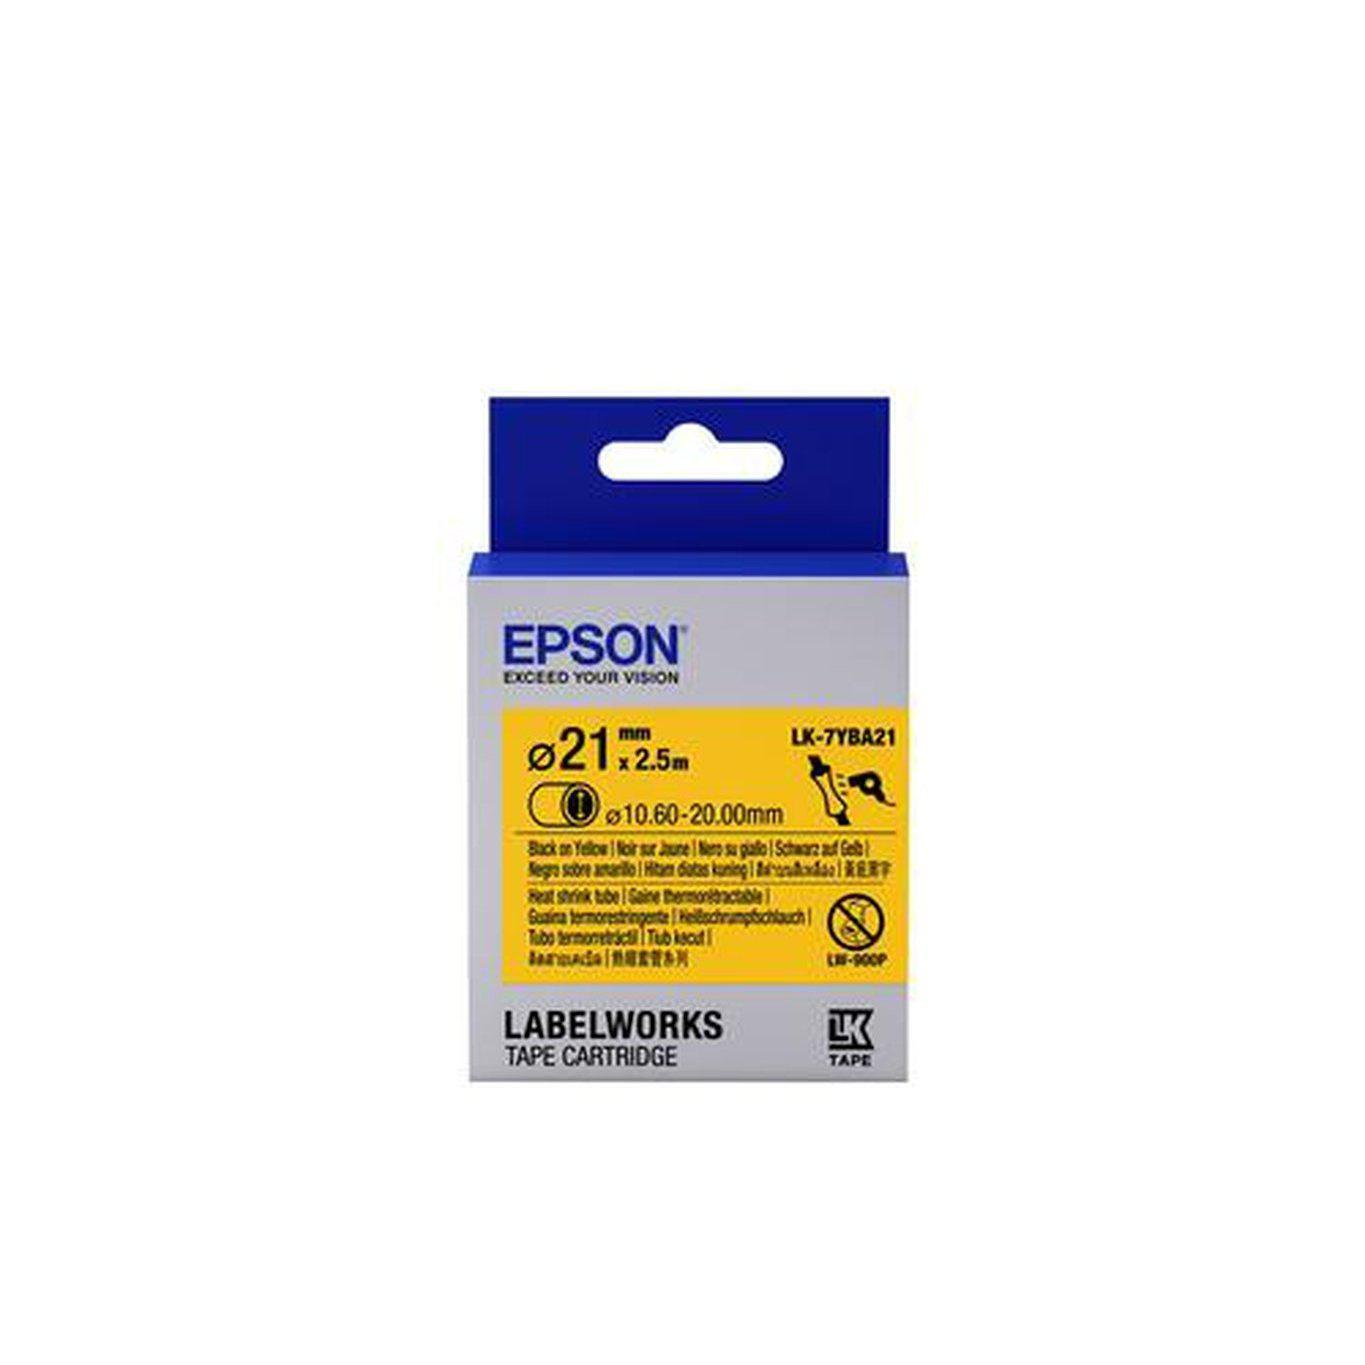 Epson LabelWorks Tape Cartridge Heat Shrink Tube LK-7YBA21 21mm x 2.5m, Black on Yellow | C53S657904 Consumable Epson